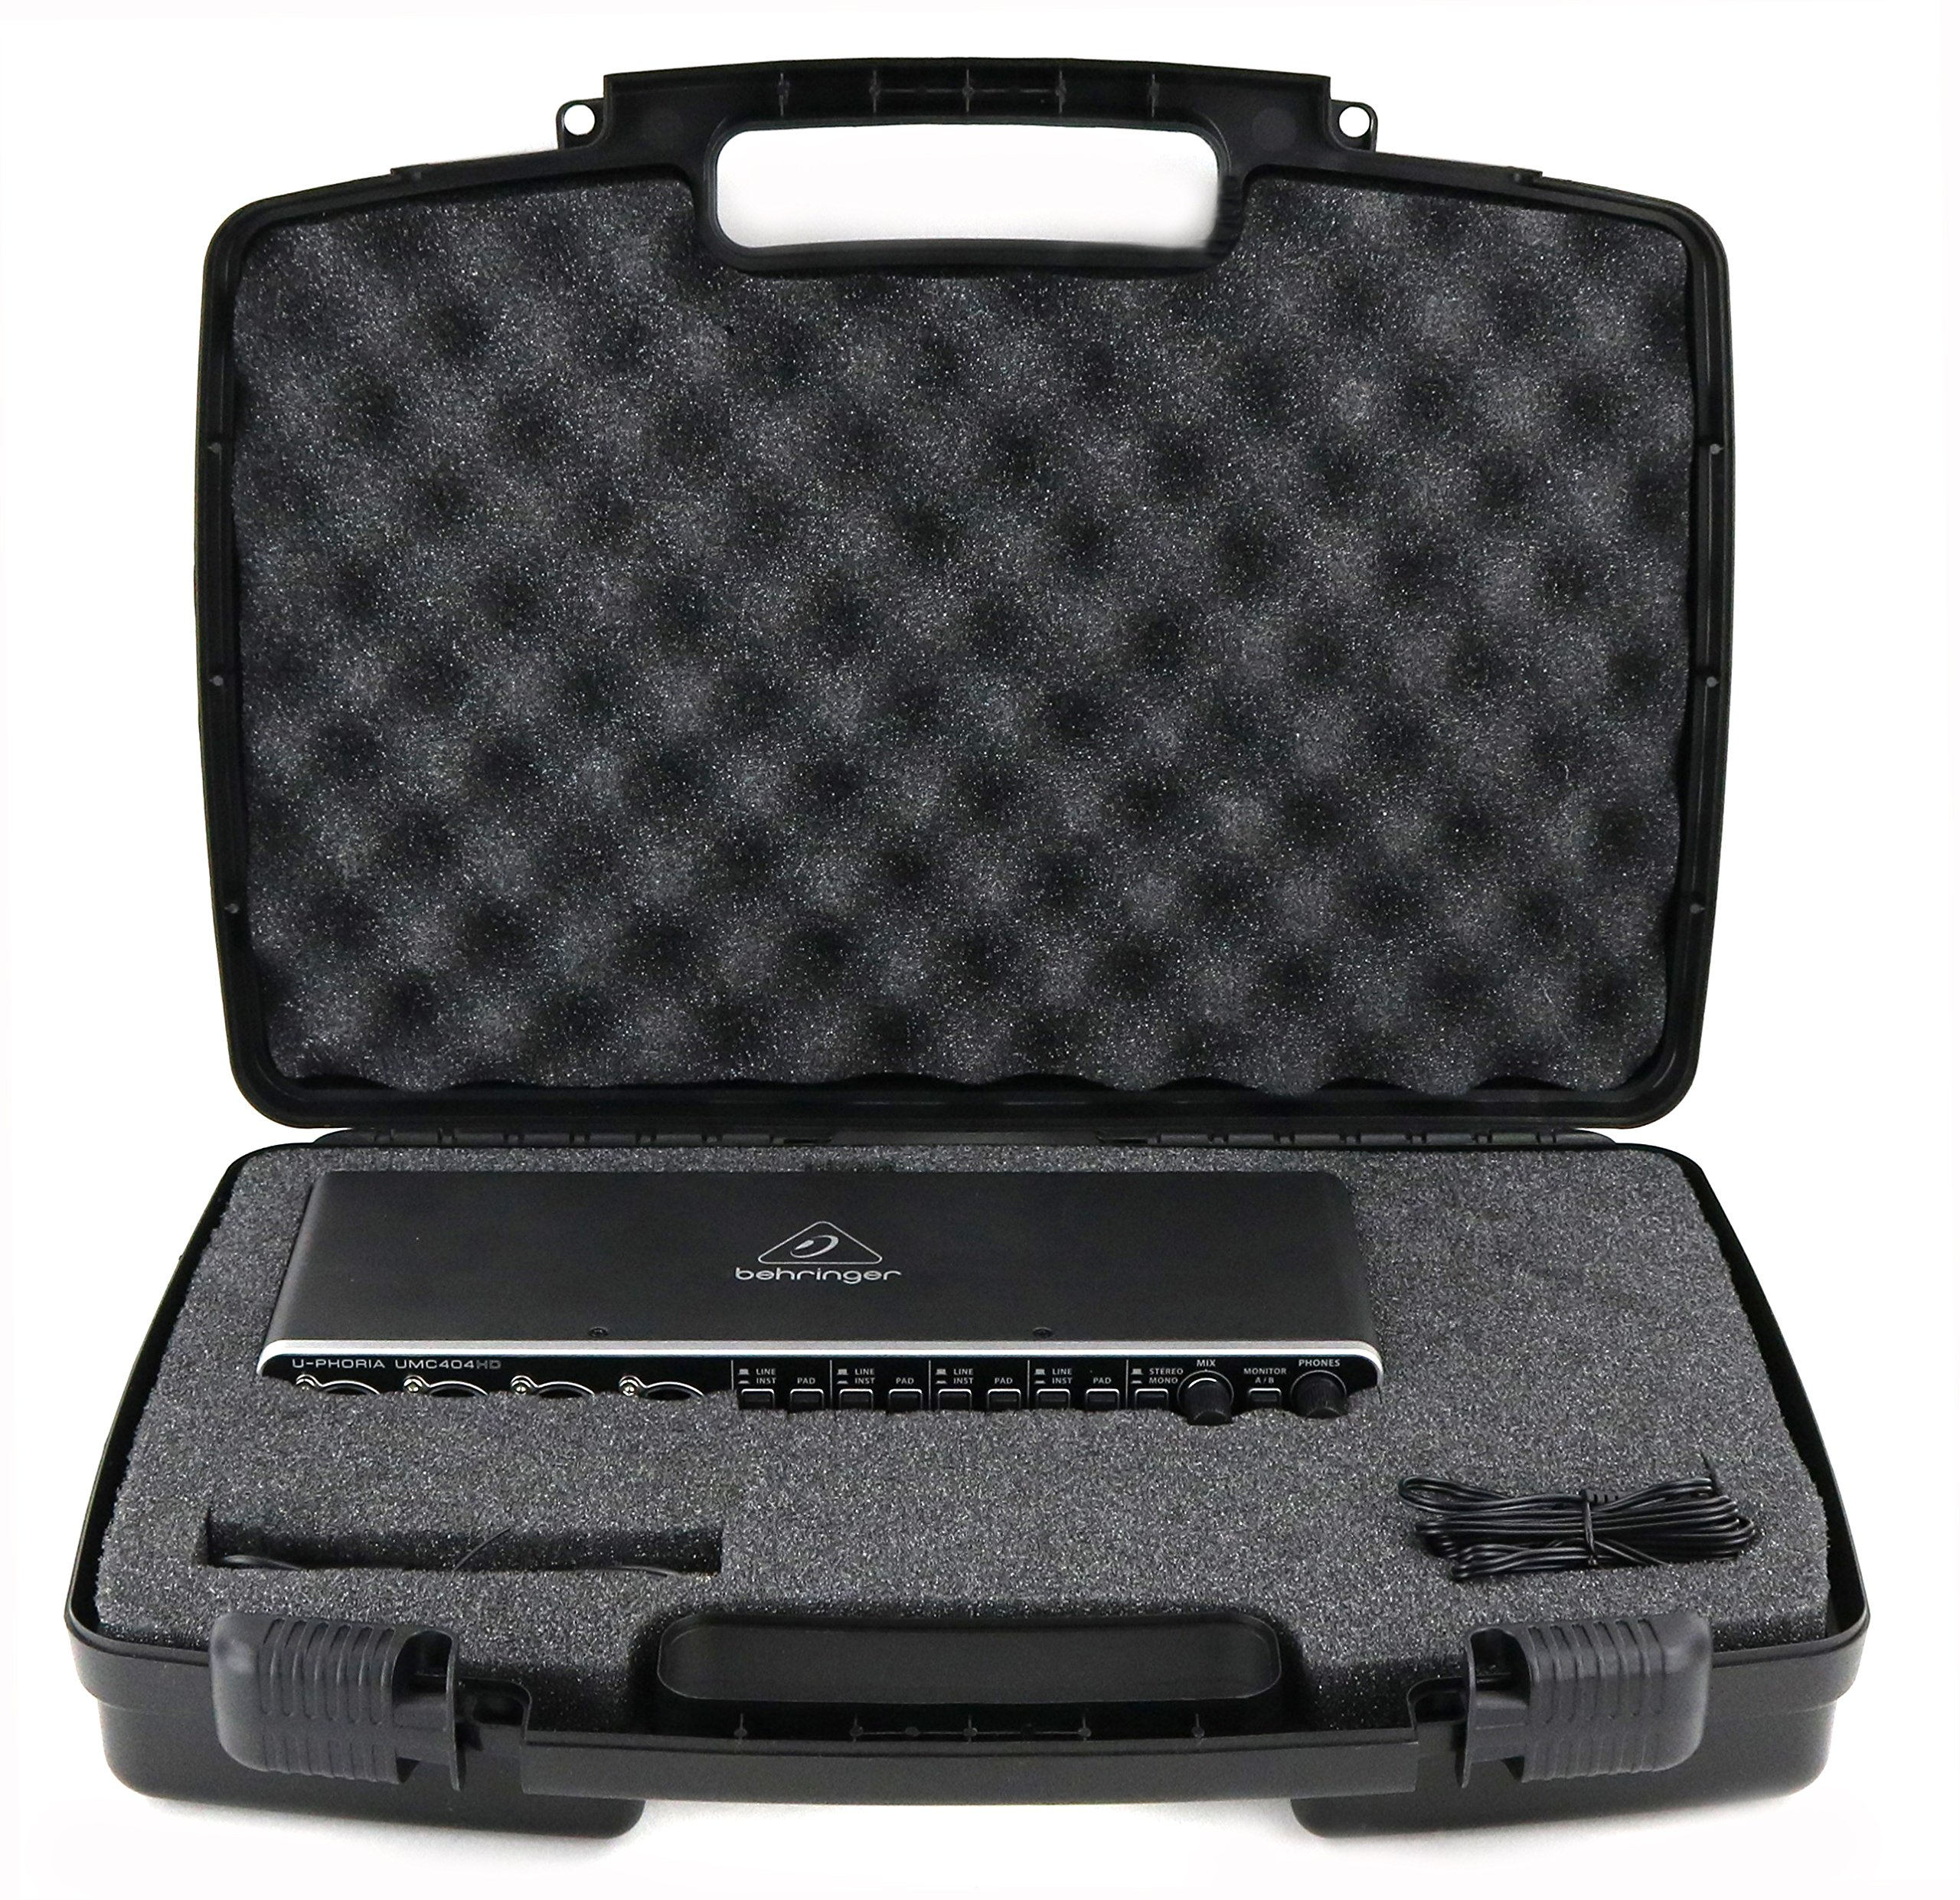 Life Made Better Storage Organizer - Compatible with BEHRINGER U-PHORIA UMC404HD And Accessories - Durable Carrying Case - Black